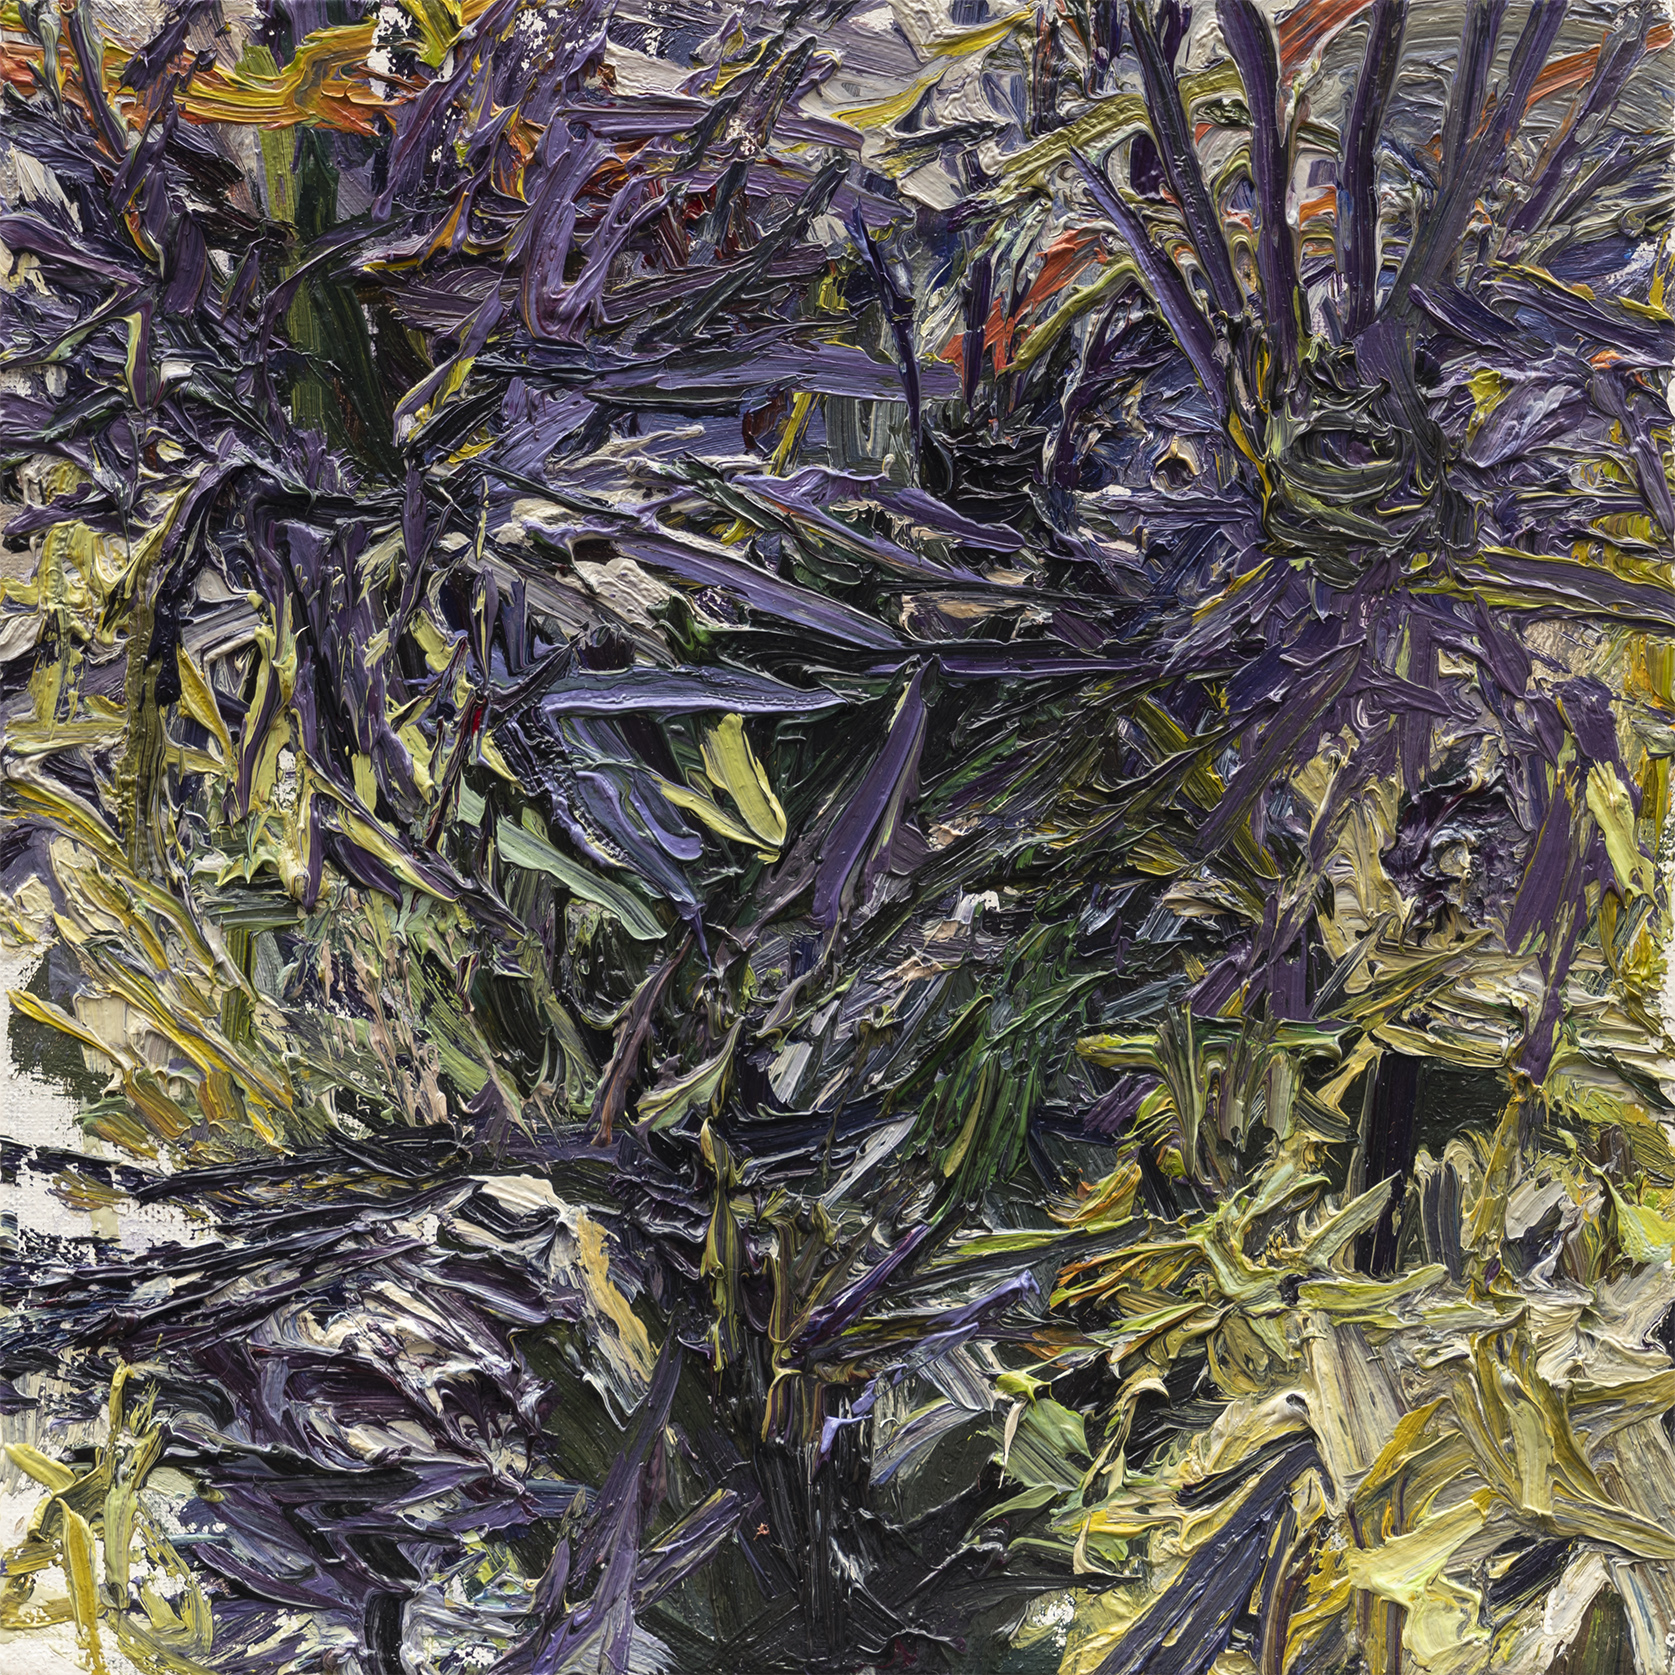 Thistles No.3   10in x 10in, oil on linen, 2018